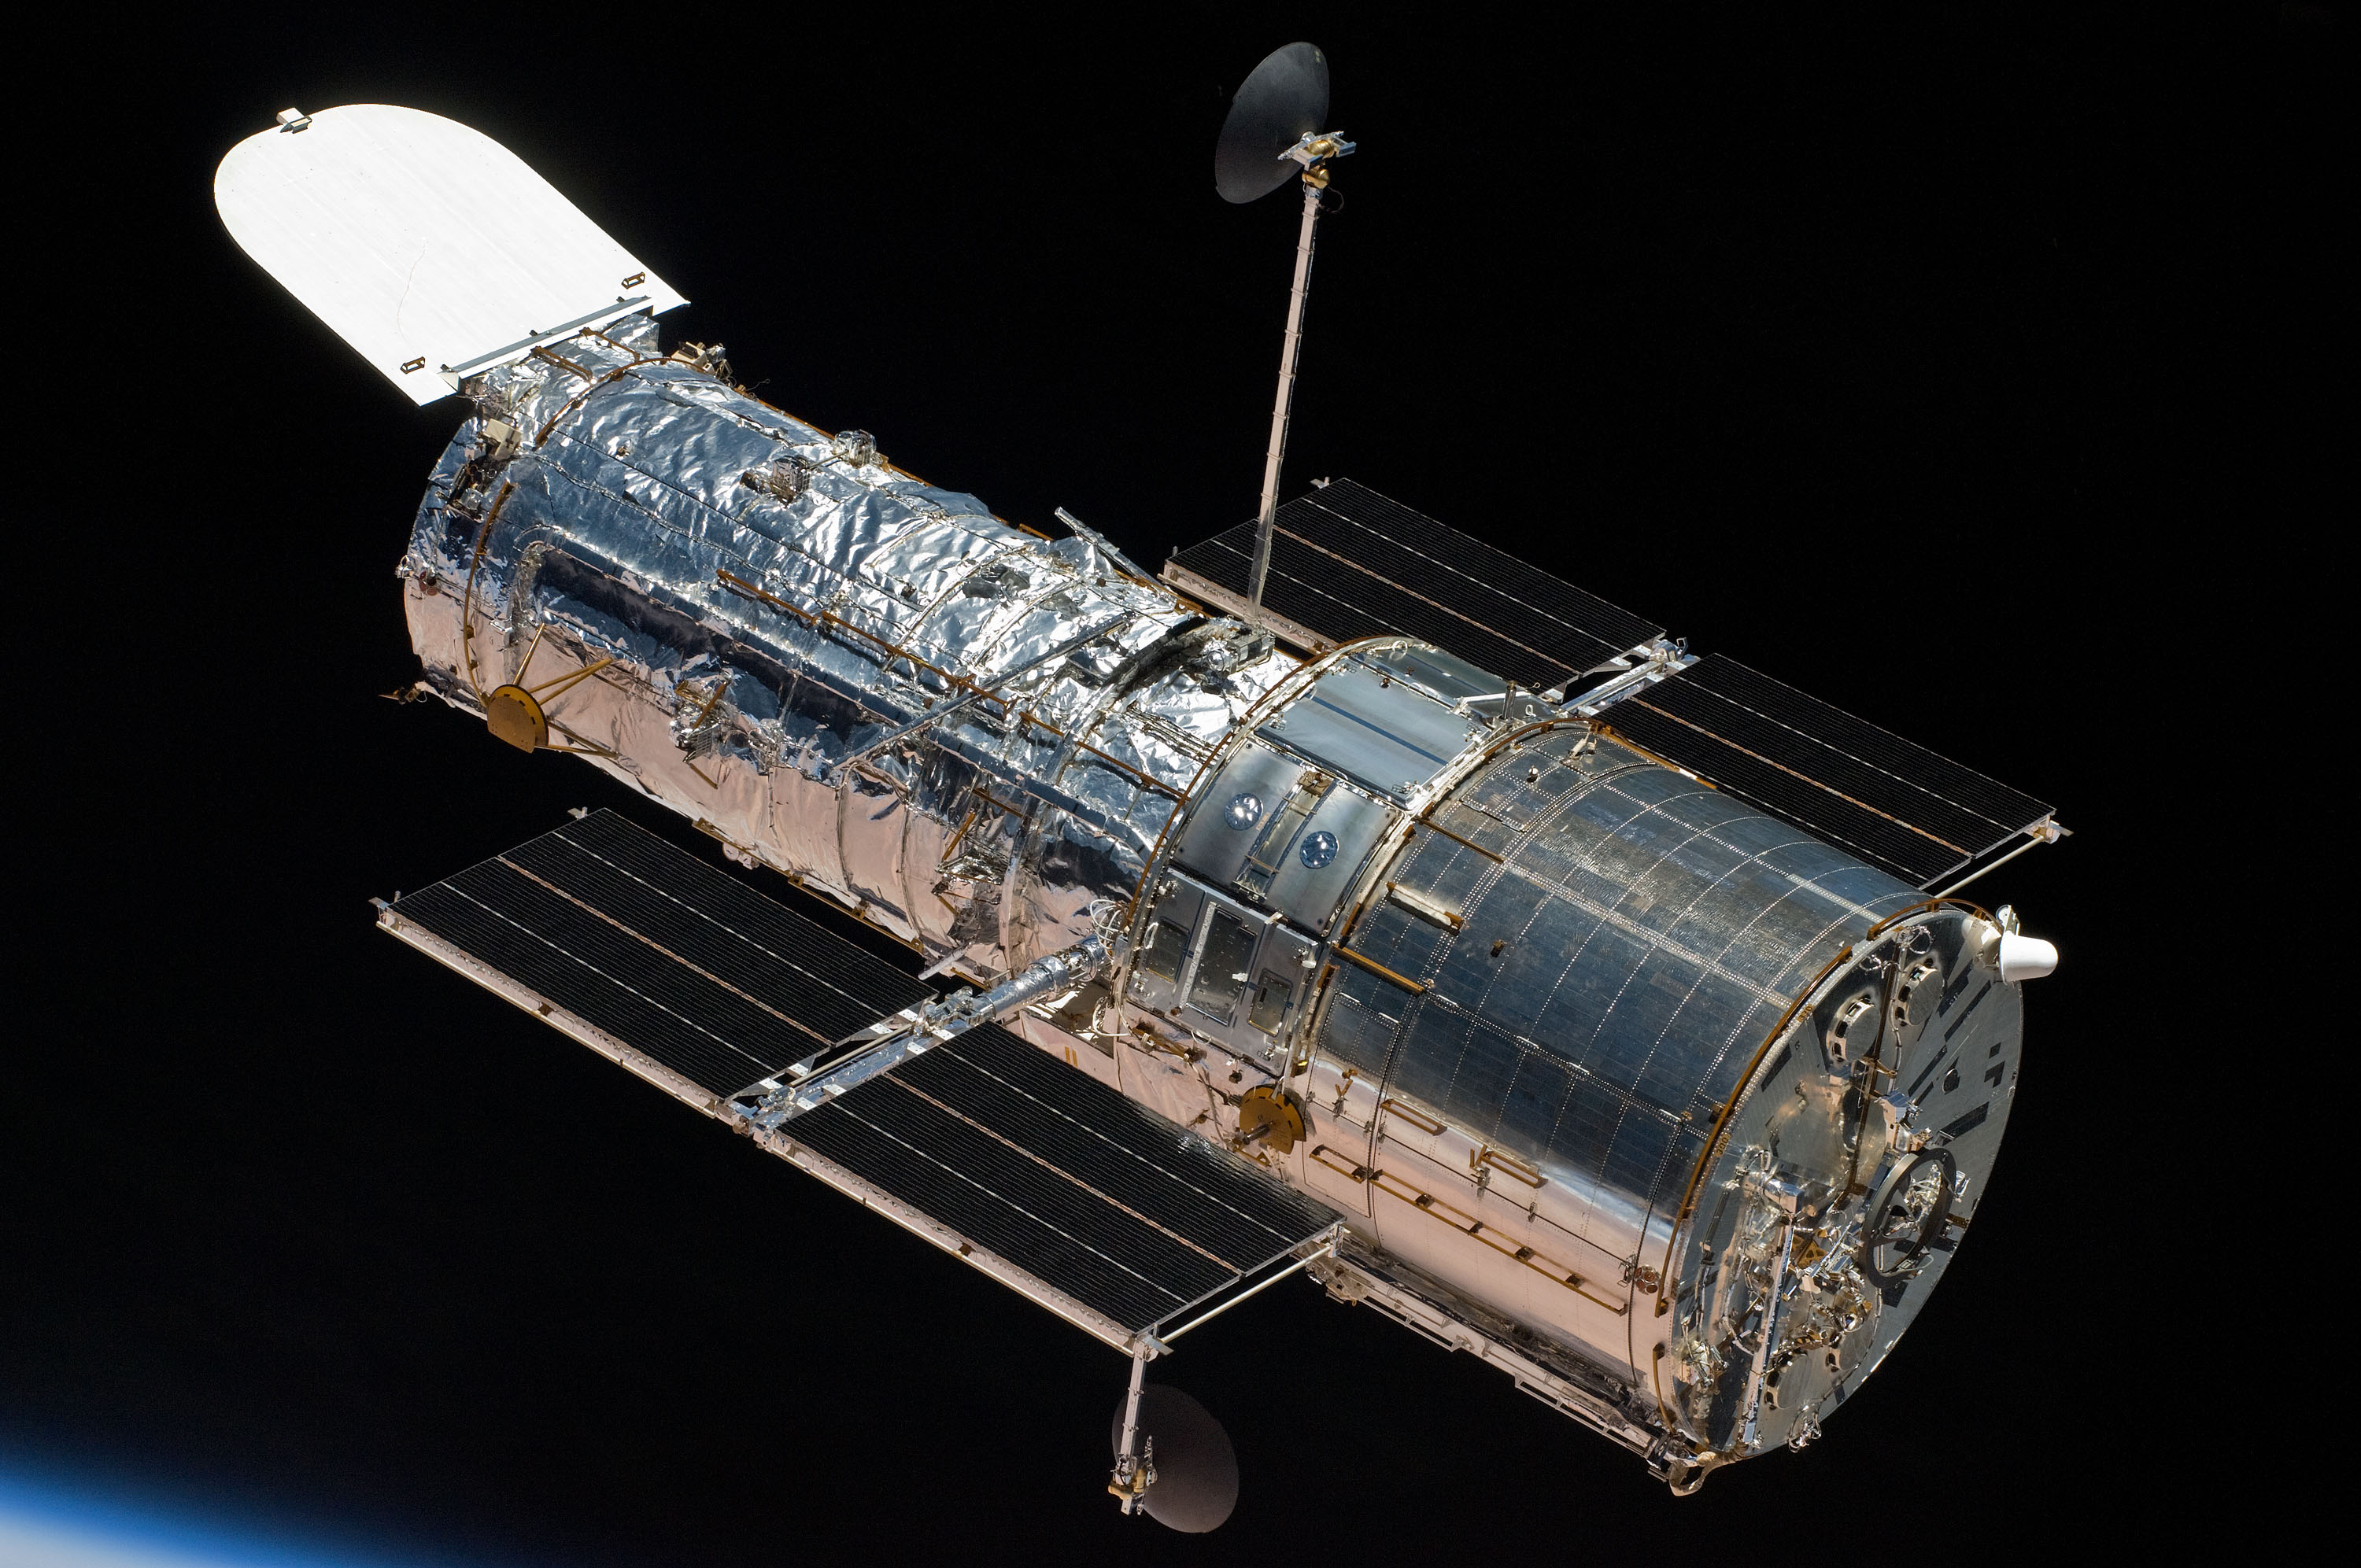 An image of NASA's Hubble Space Telescope.